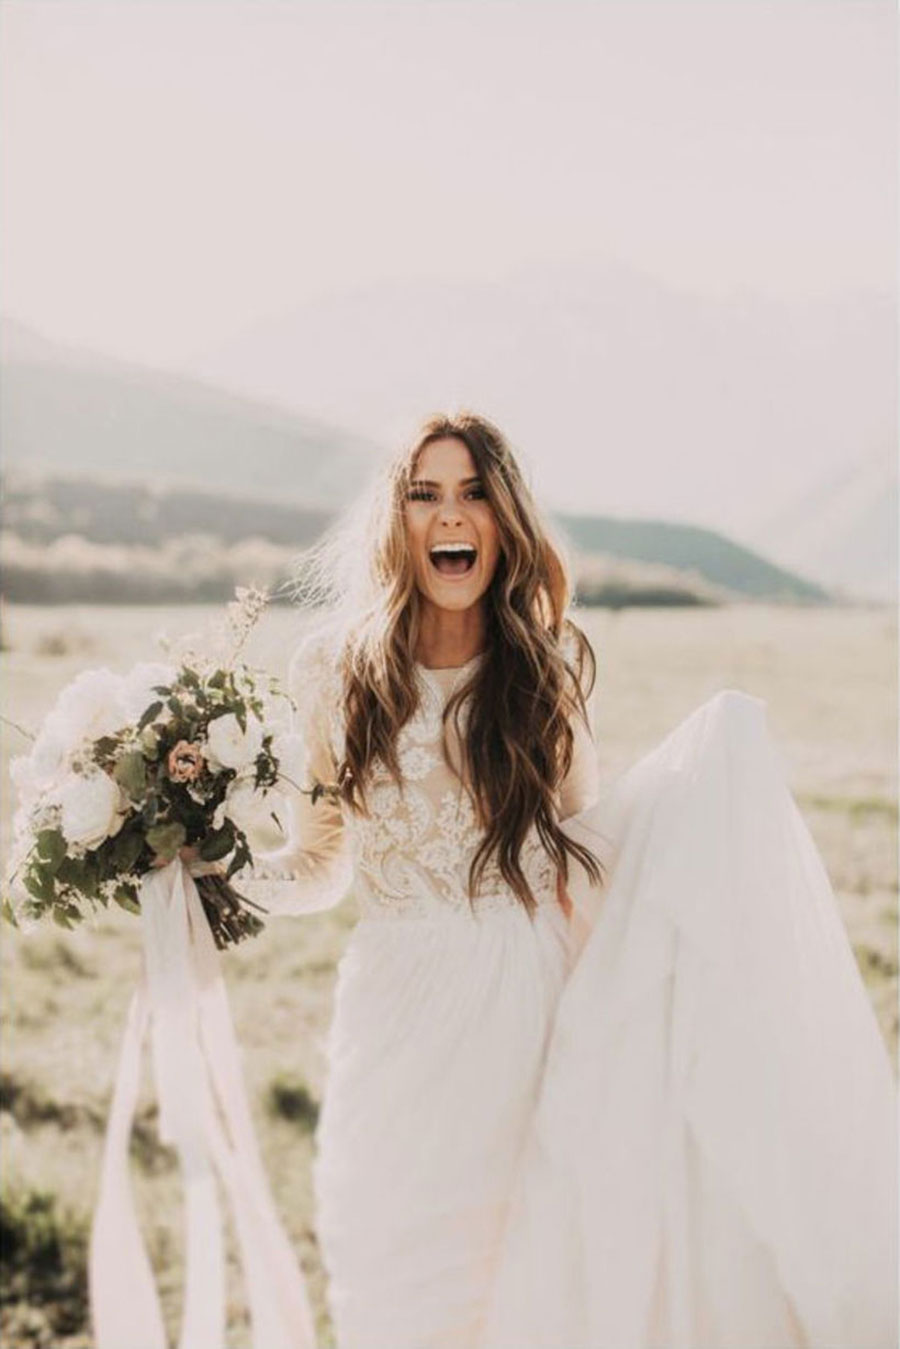 Free Wedding Dress | Giveaway For A Free Wedding Dress Vancouver Wedding Dresses